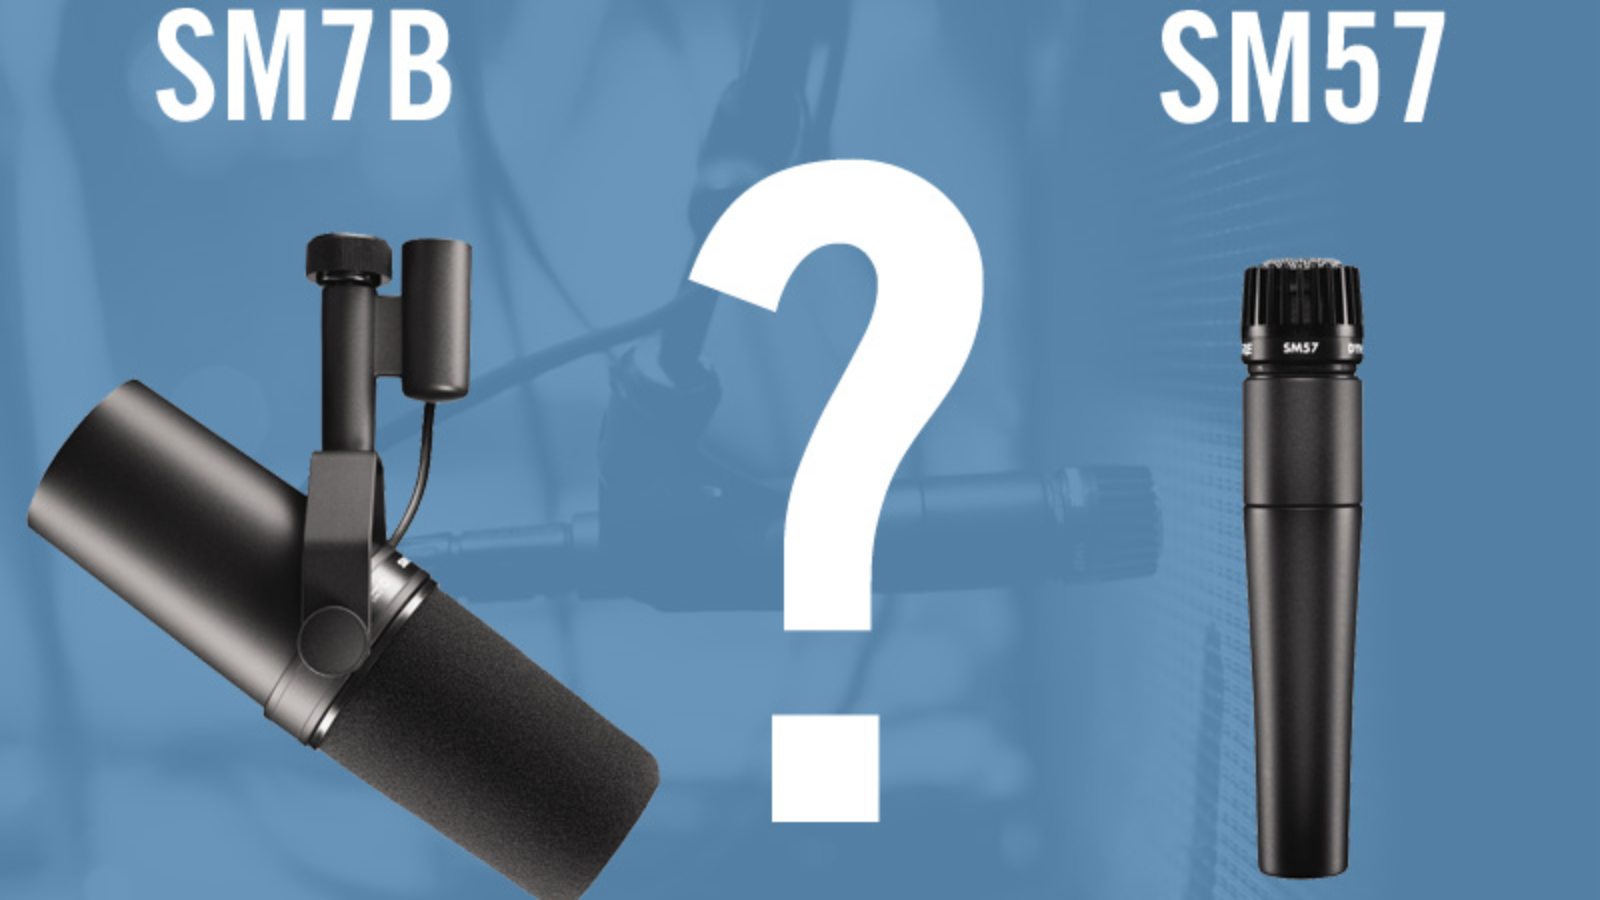 What's the Difference Between the Shure SM57 & The SM7B?